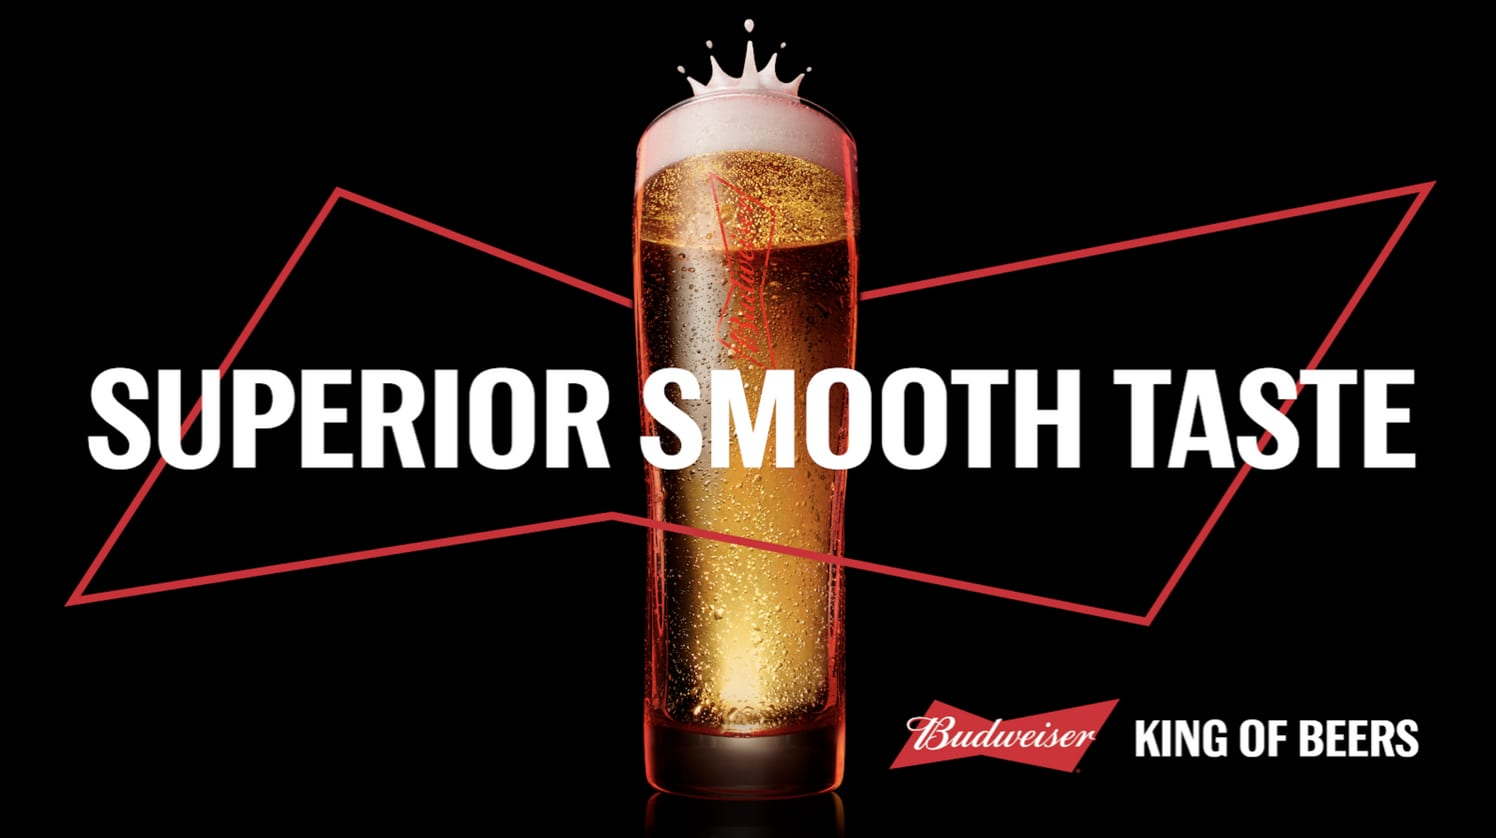 Budweiser Global Be A King Campaign